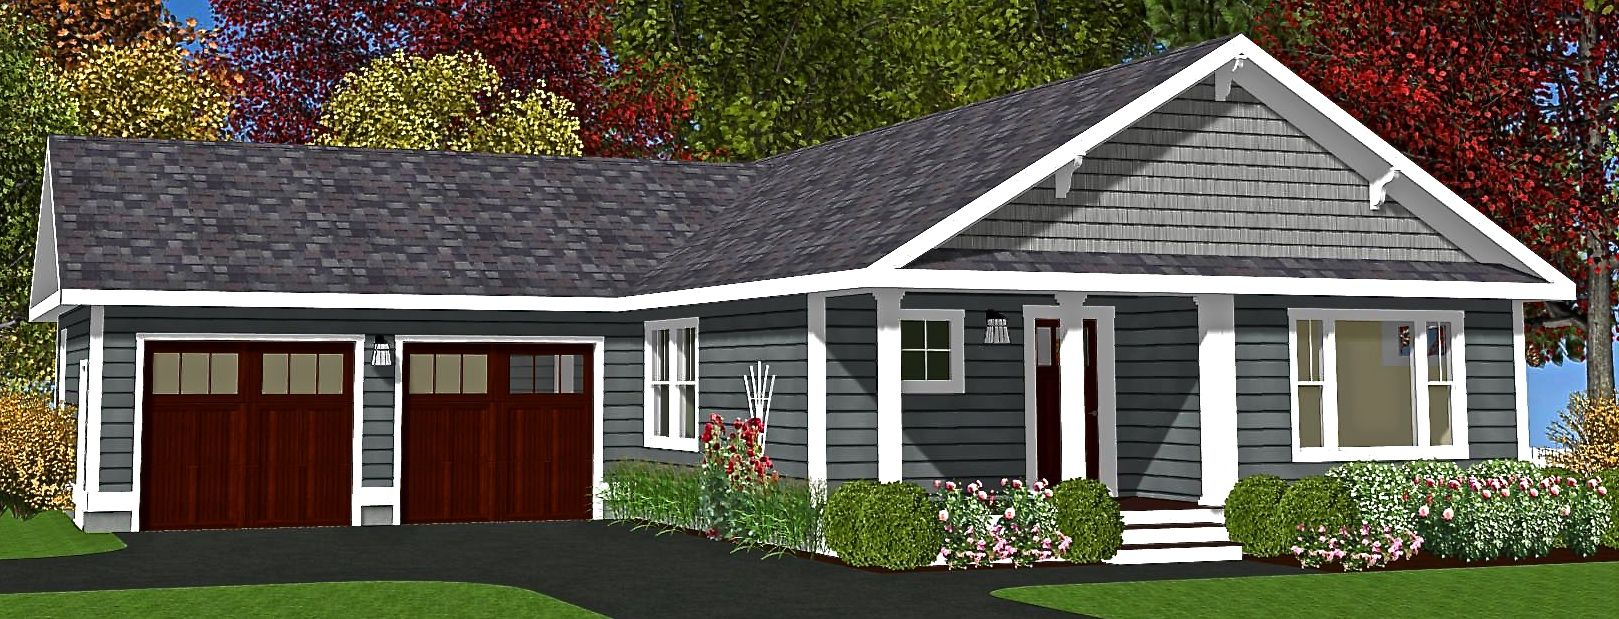 Do you know Modular We do The Emma 2 is a Craftsman Style Modular